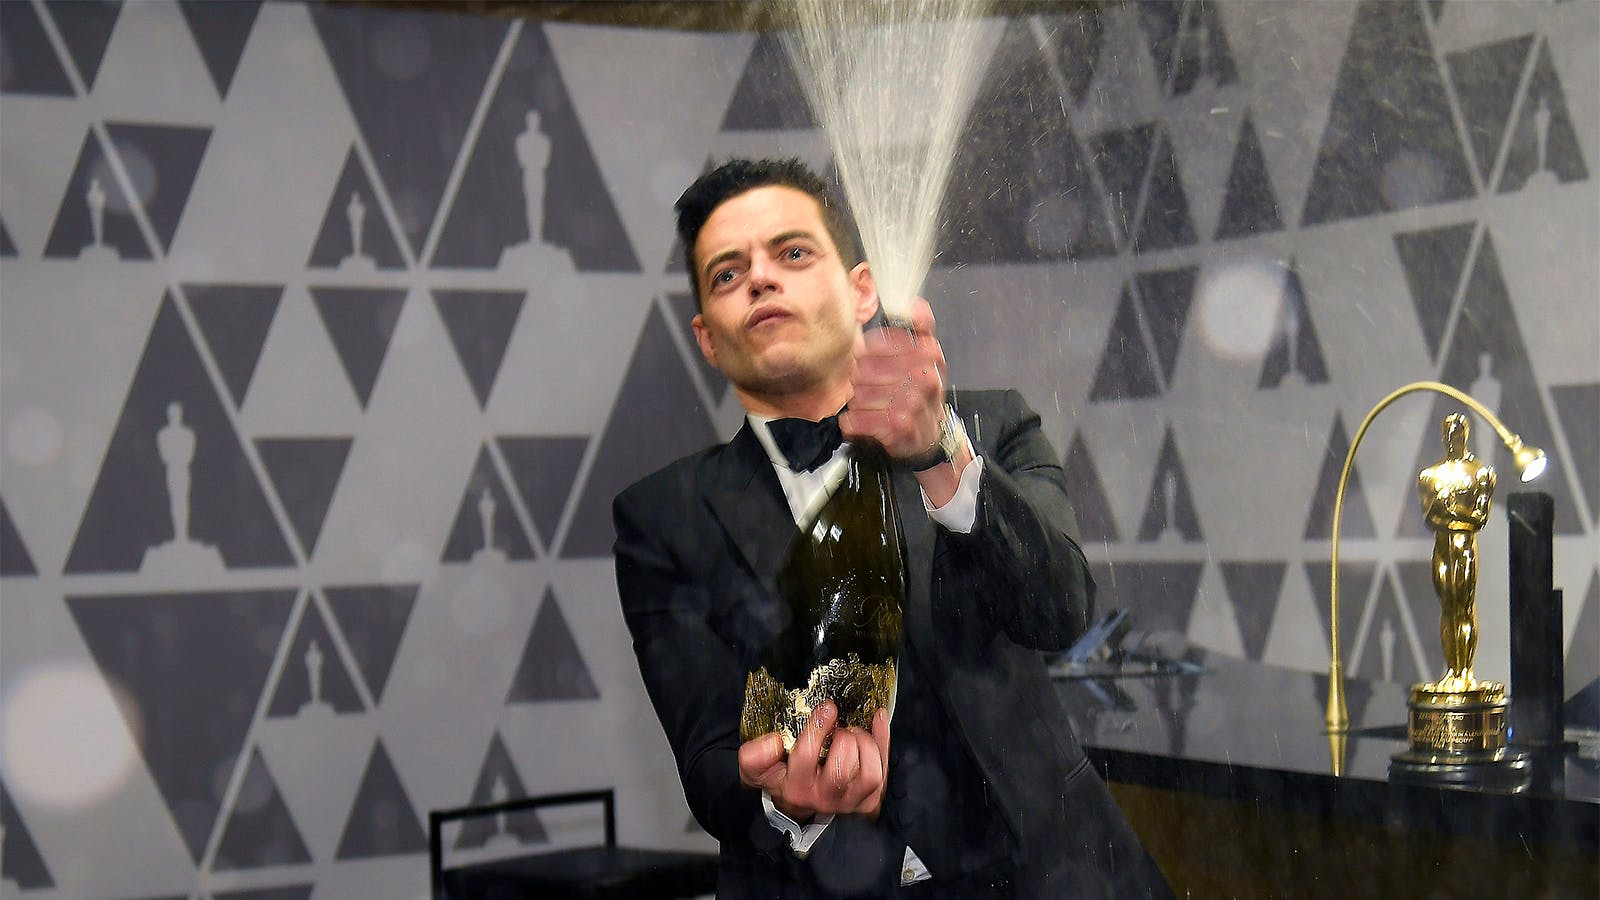 Oscars Wine Time! Rami Malek Sprays Champagne; Francis Ford Coppola, Wolfgang Puck Dish on Their Pours and Snacks